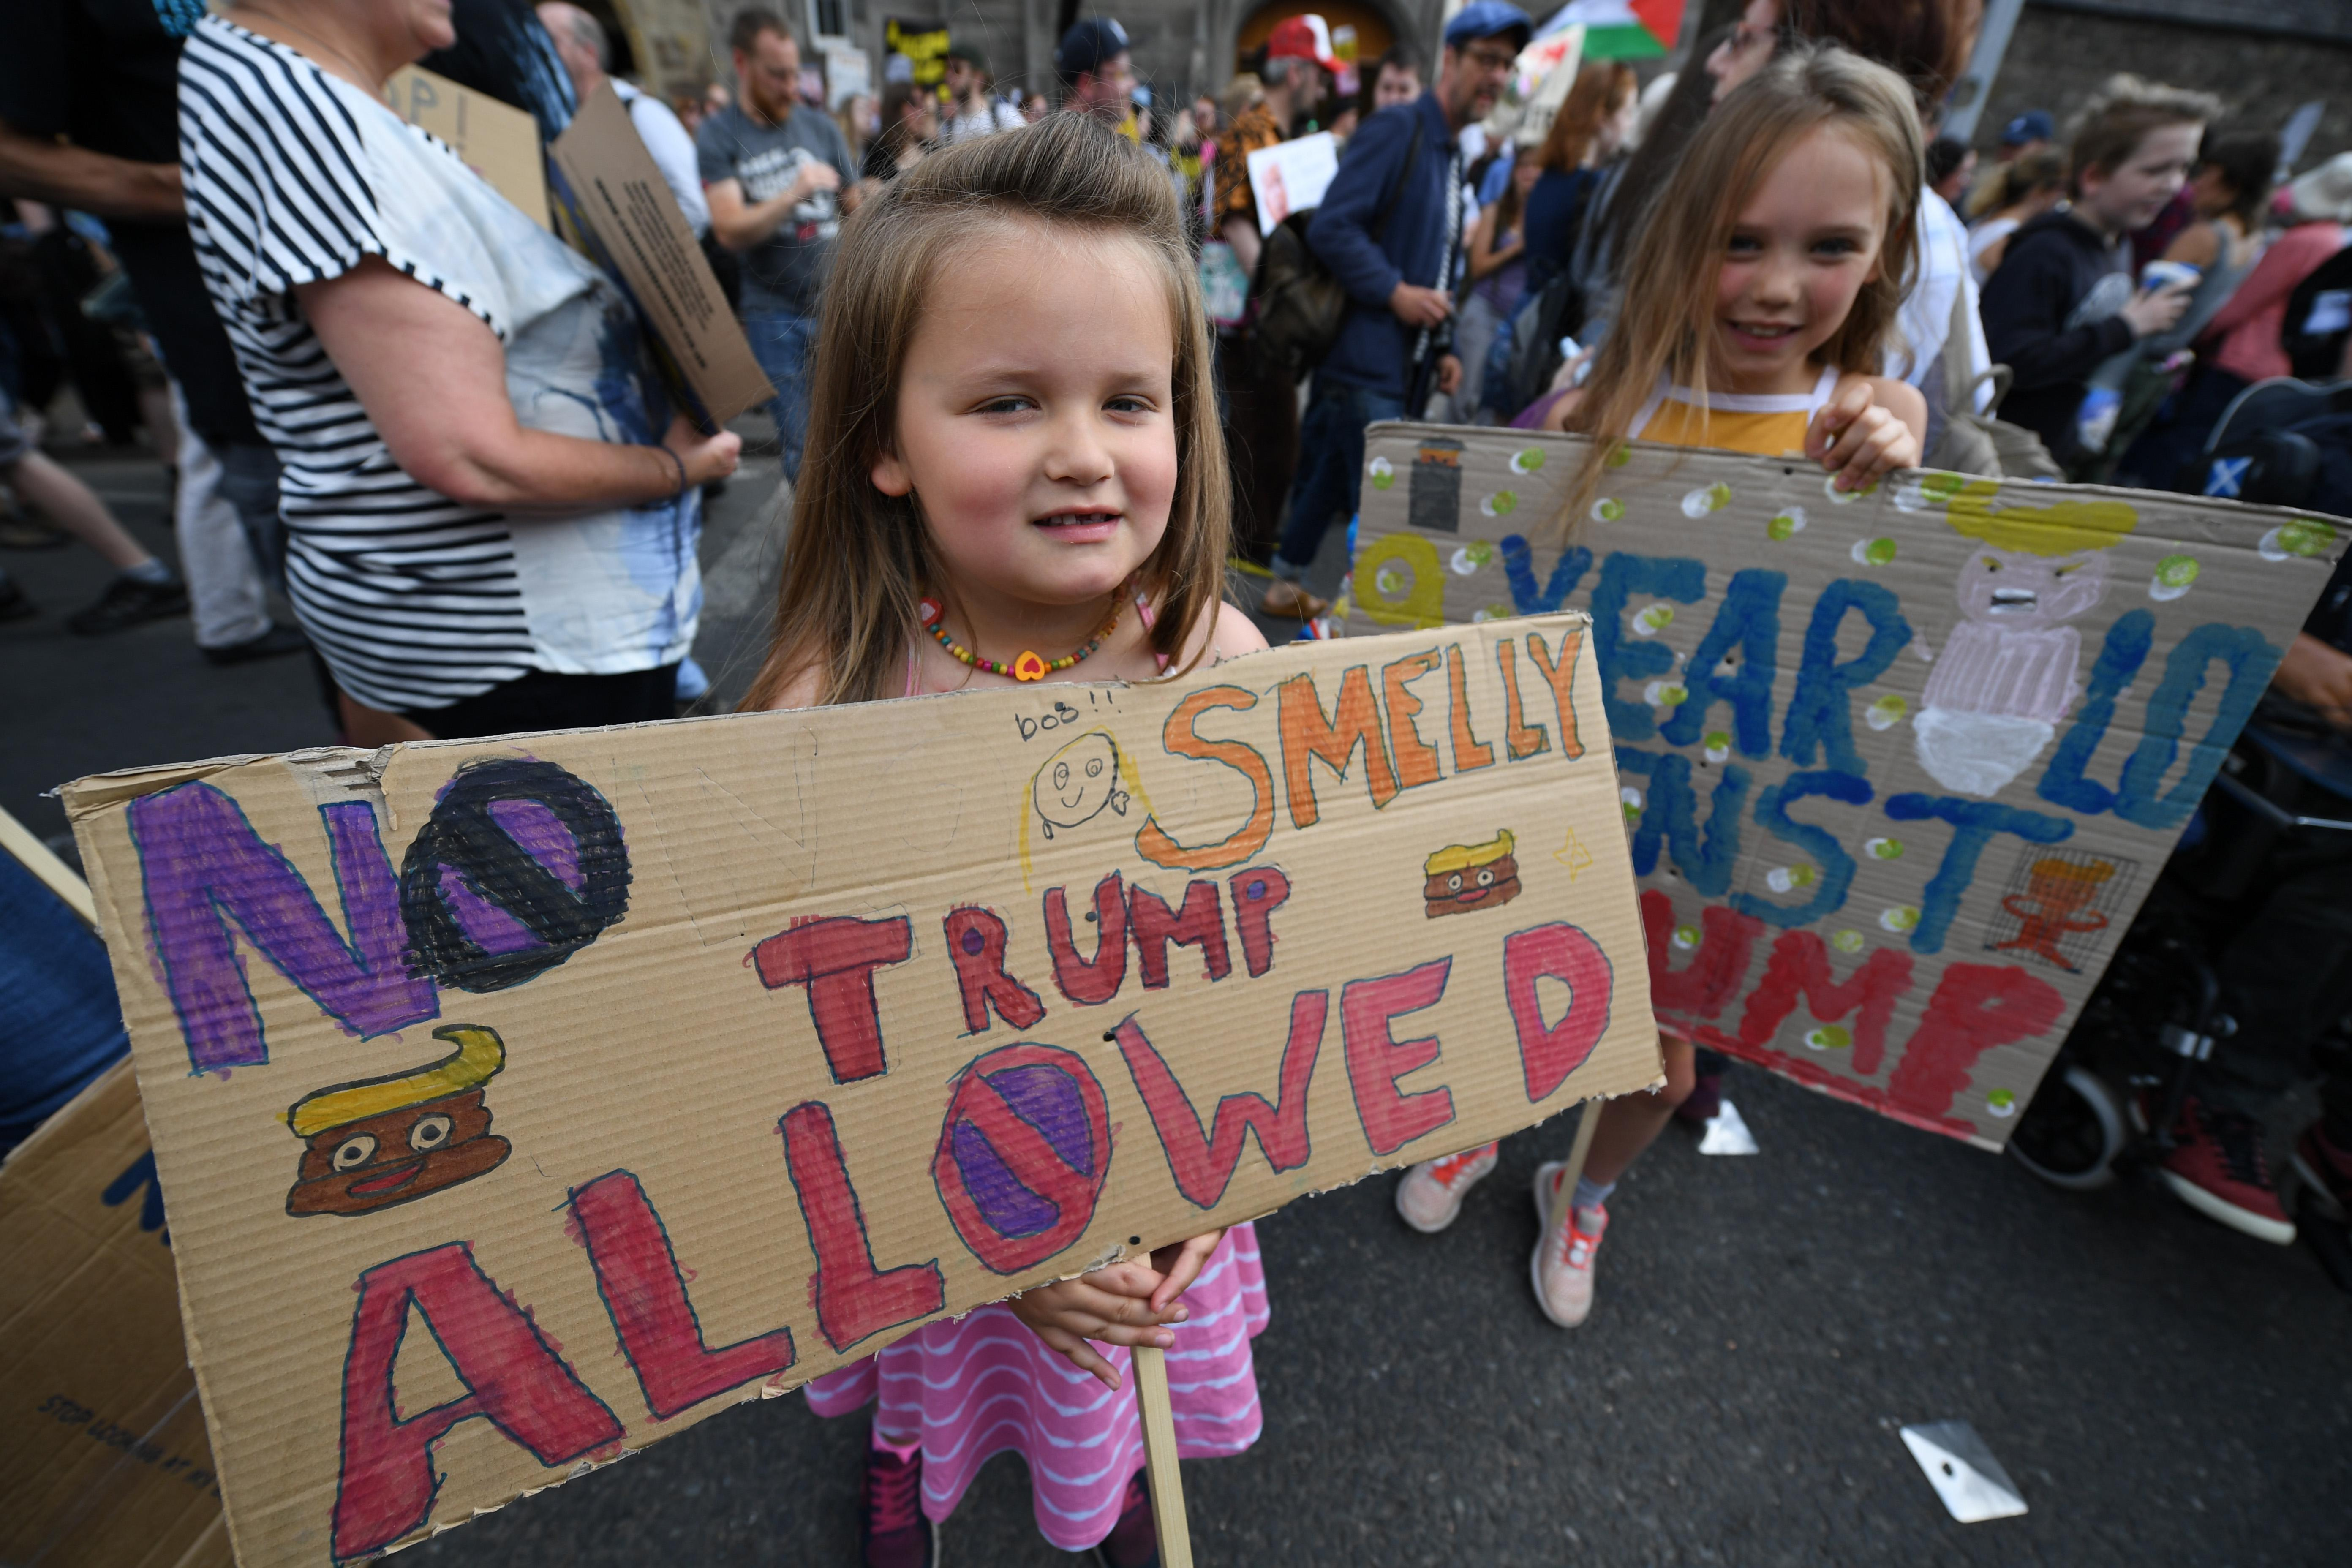 Young girls hold anti-Trump signs on July 14, 2018 in Edinburgh, Scotland.